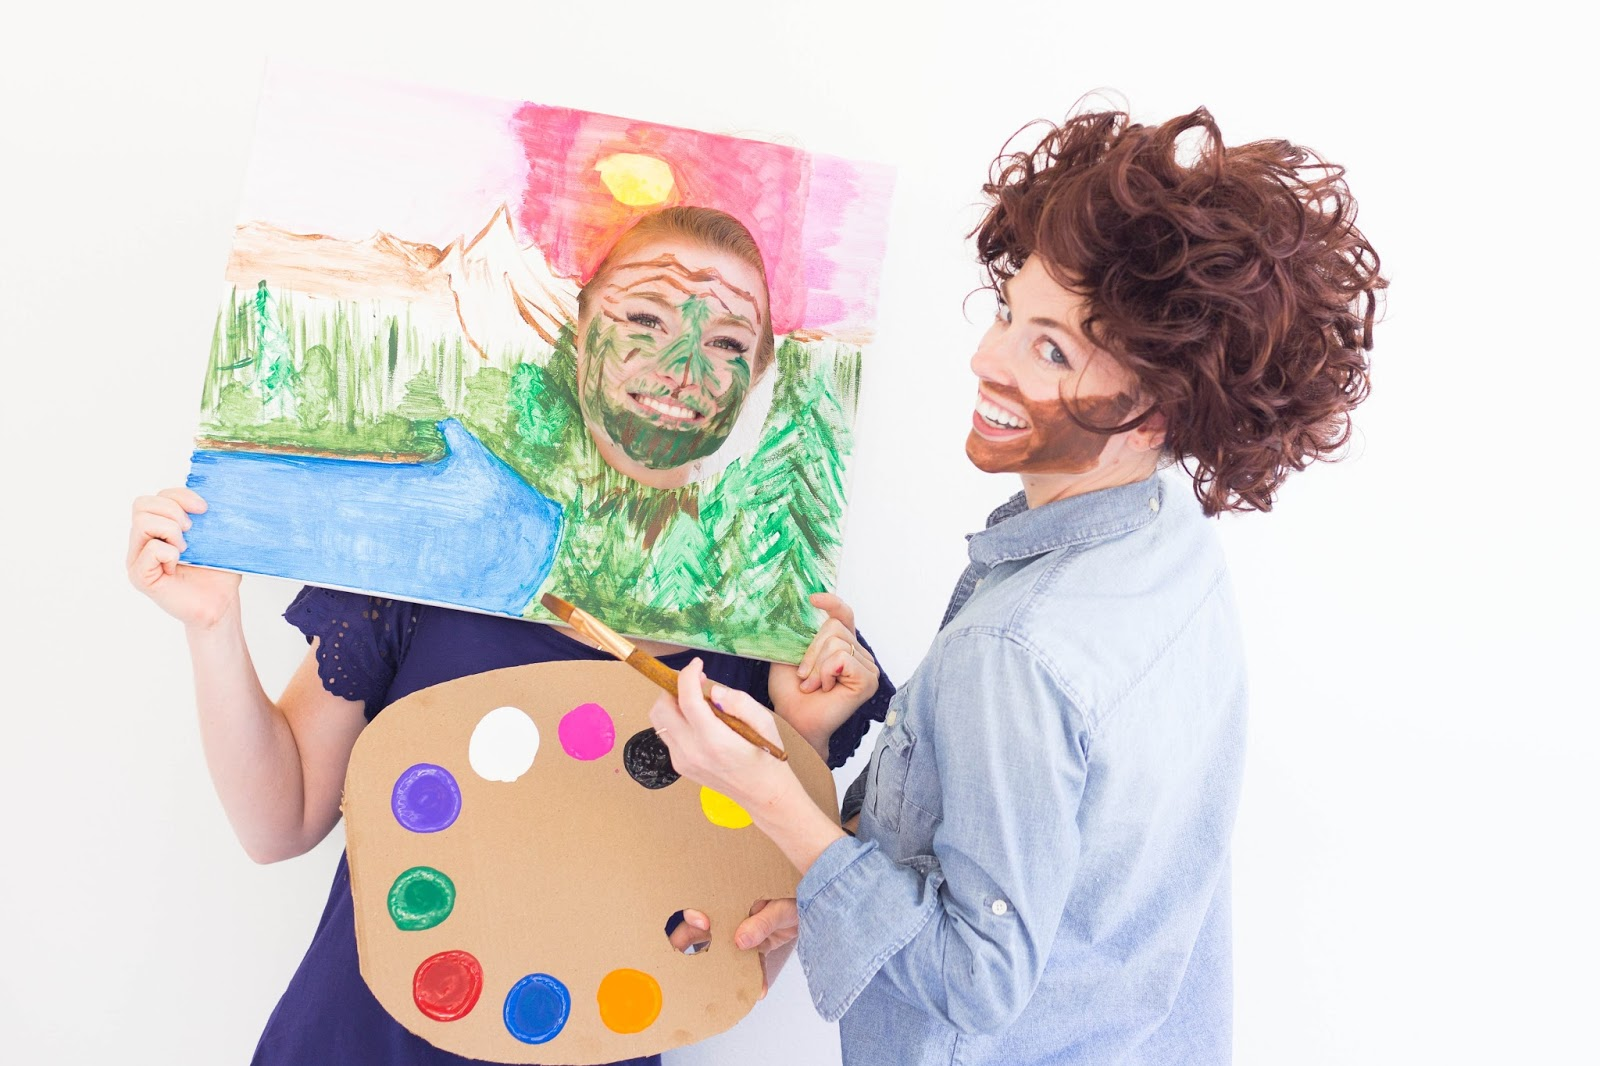 Do it yourself divas diy bob ross halloween costume with happy happy little tree costume idea solutioingenieria Choice Image